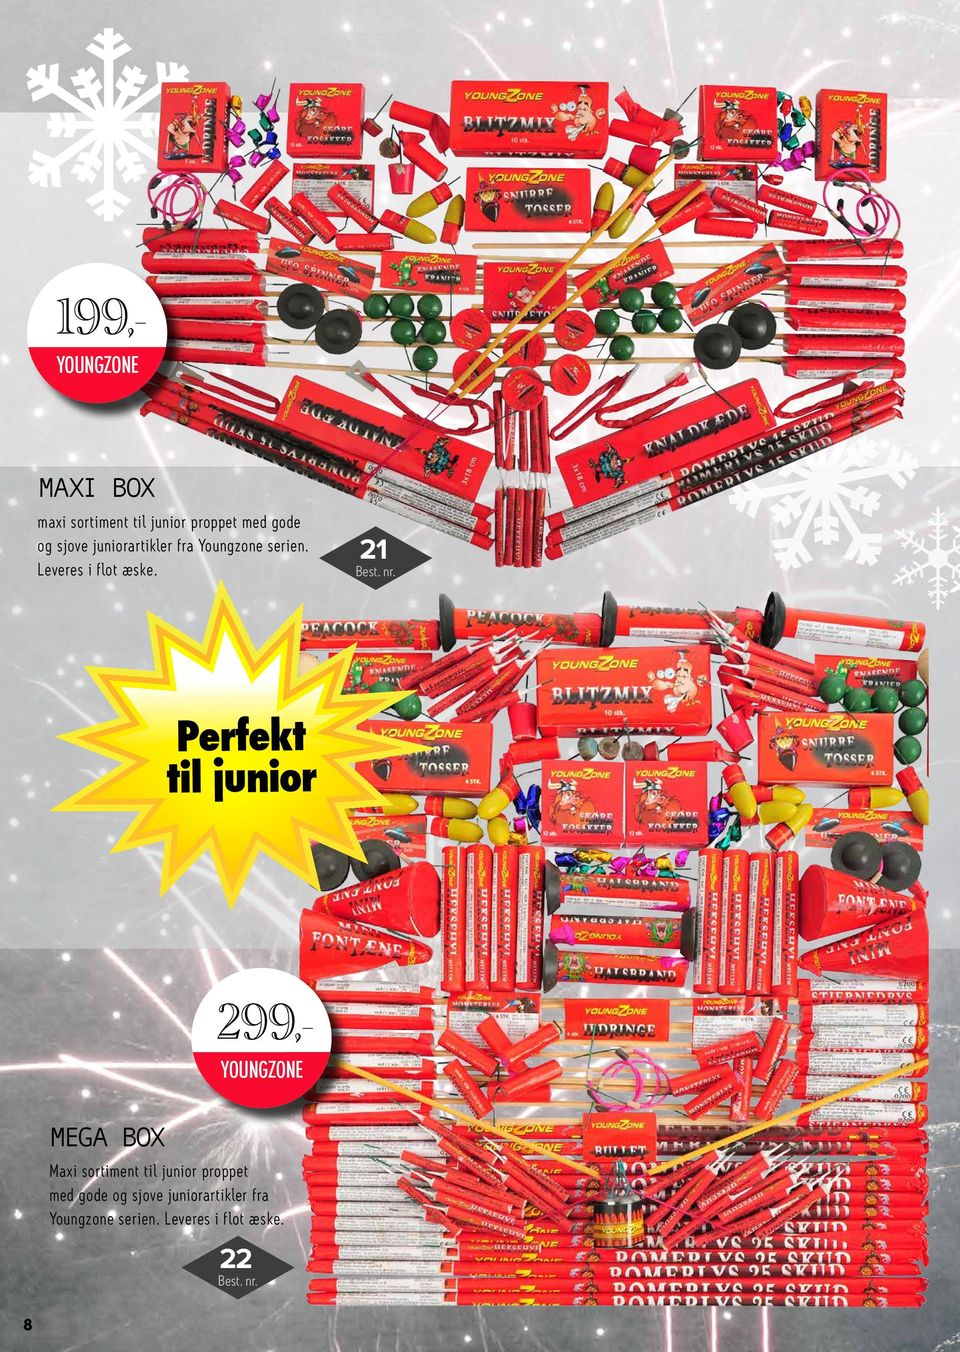 21 Perfekt til junior 199,- 299,- YOUNGZONE MEGA BOX Maxi sortiment til